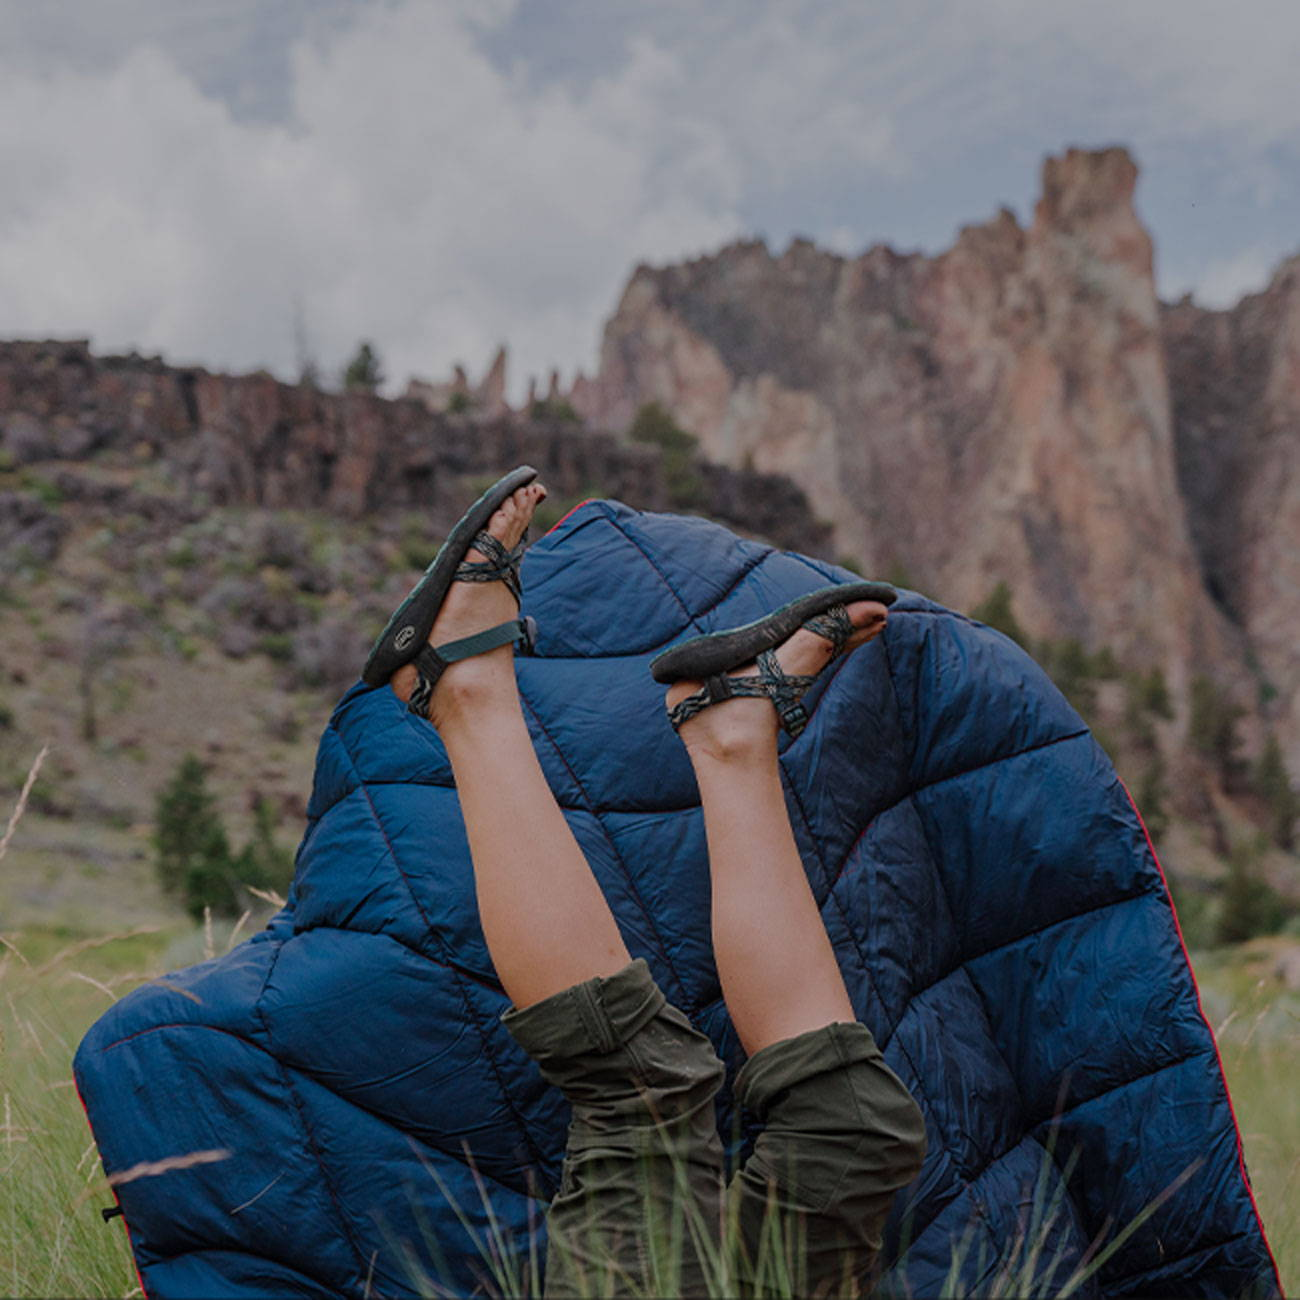 Person laying outdoors in a canyon in sandals and a warm Rumpl blanket